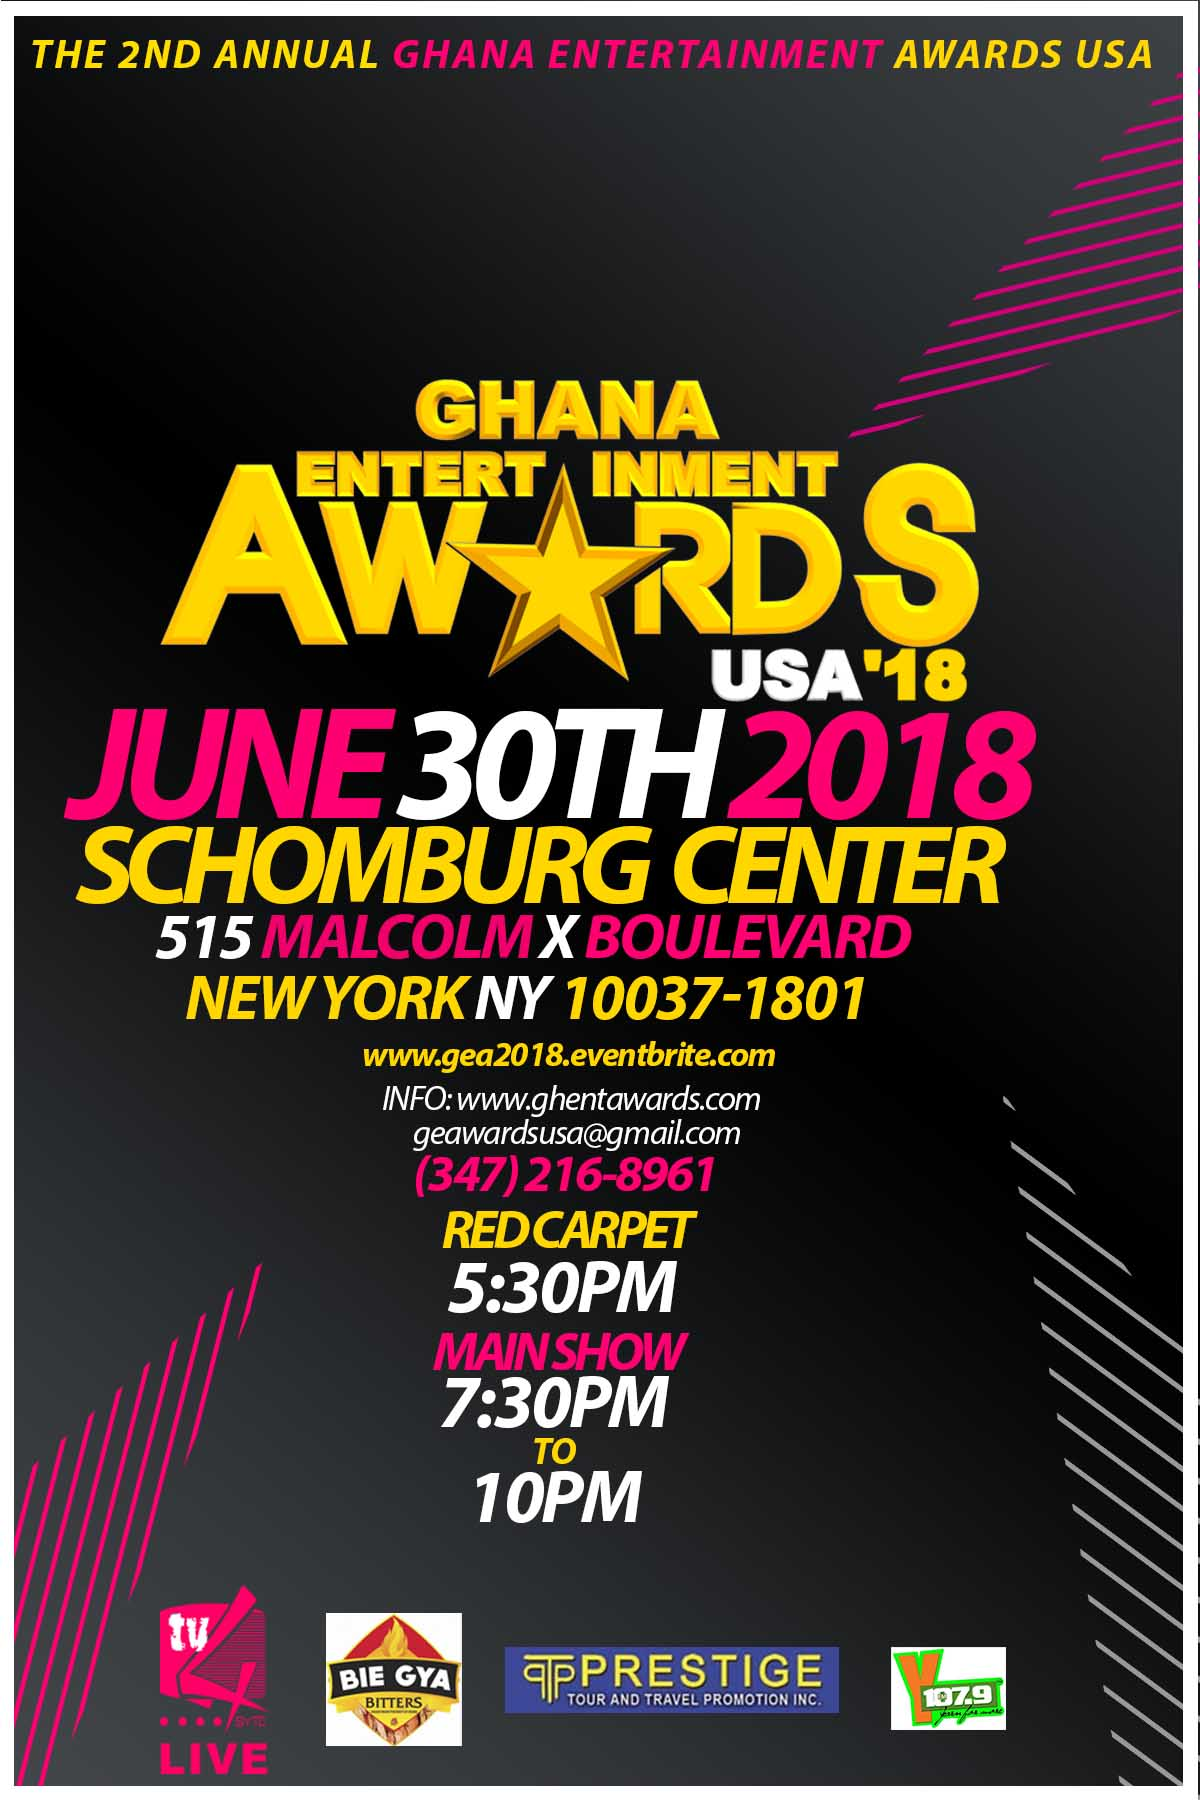 The Ghana Entertainment Awards USA Are Sure To Be Even Bigger & Better Than Last Year With A Show Filled With Star Studded Nominees